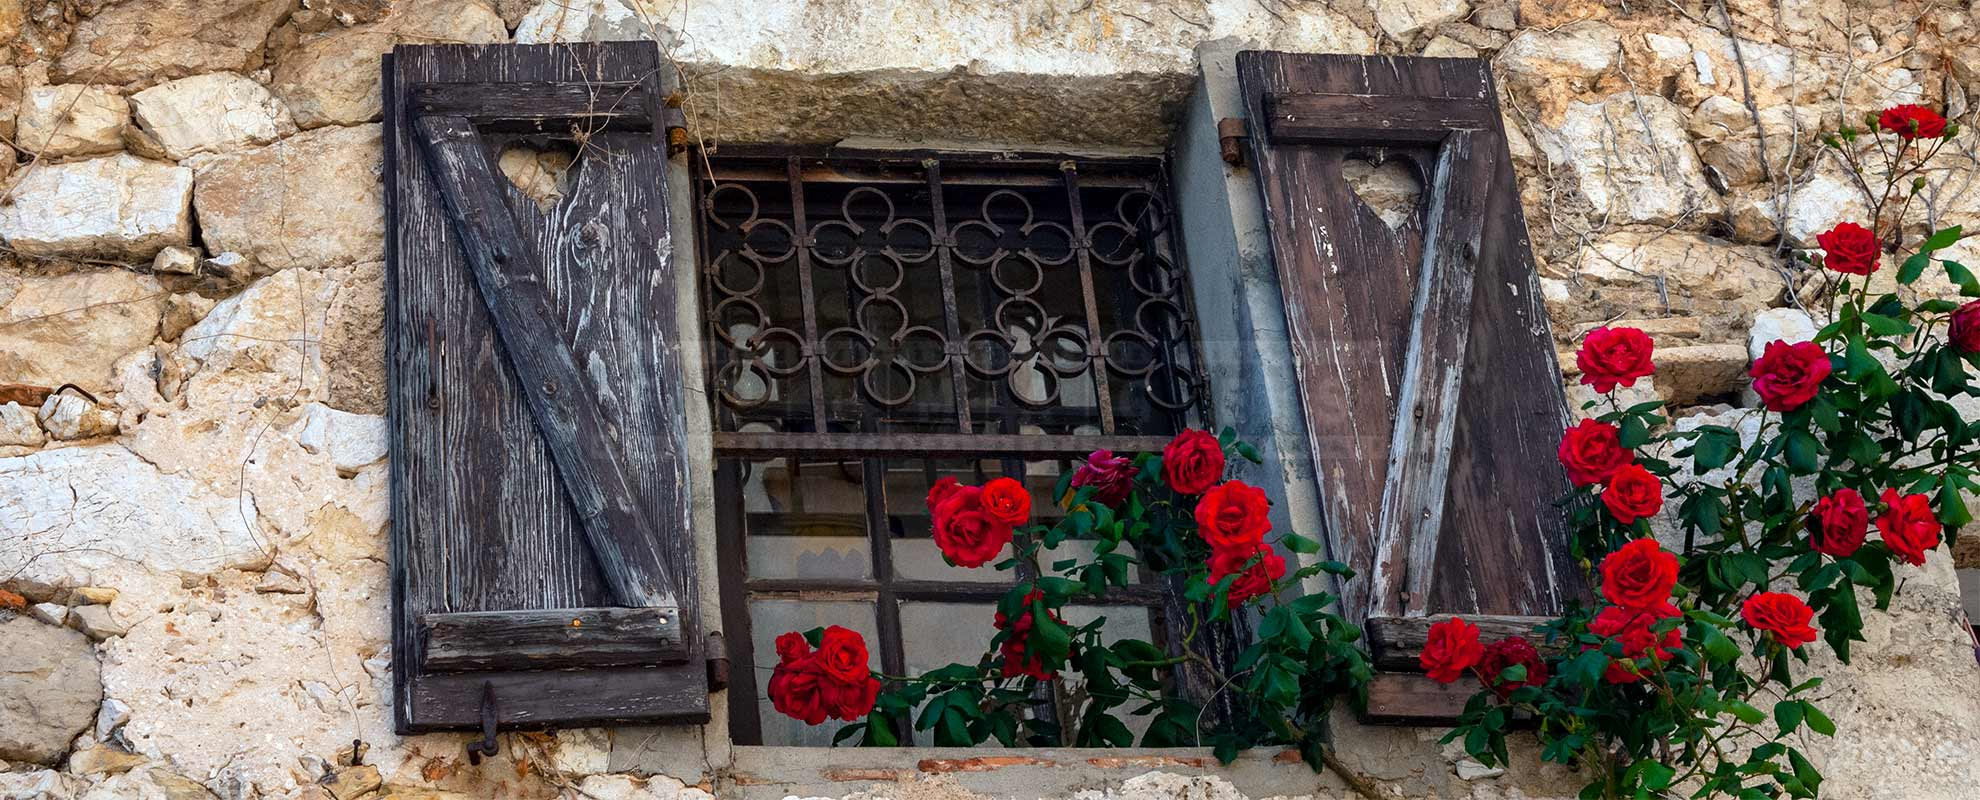 Beautiful medieval window with red roses in Eze Village